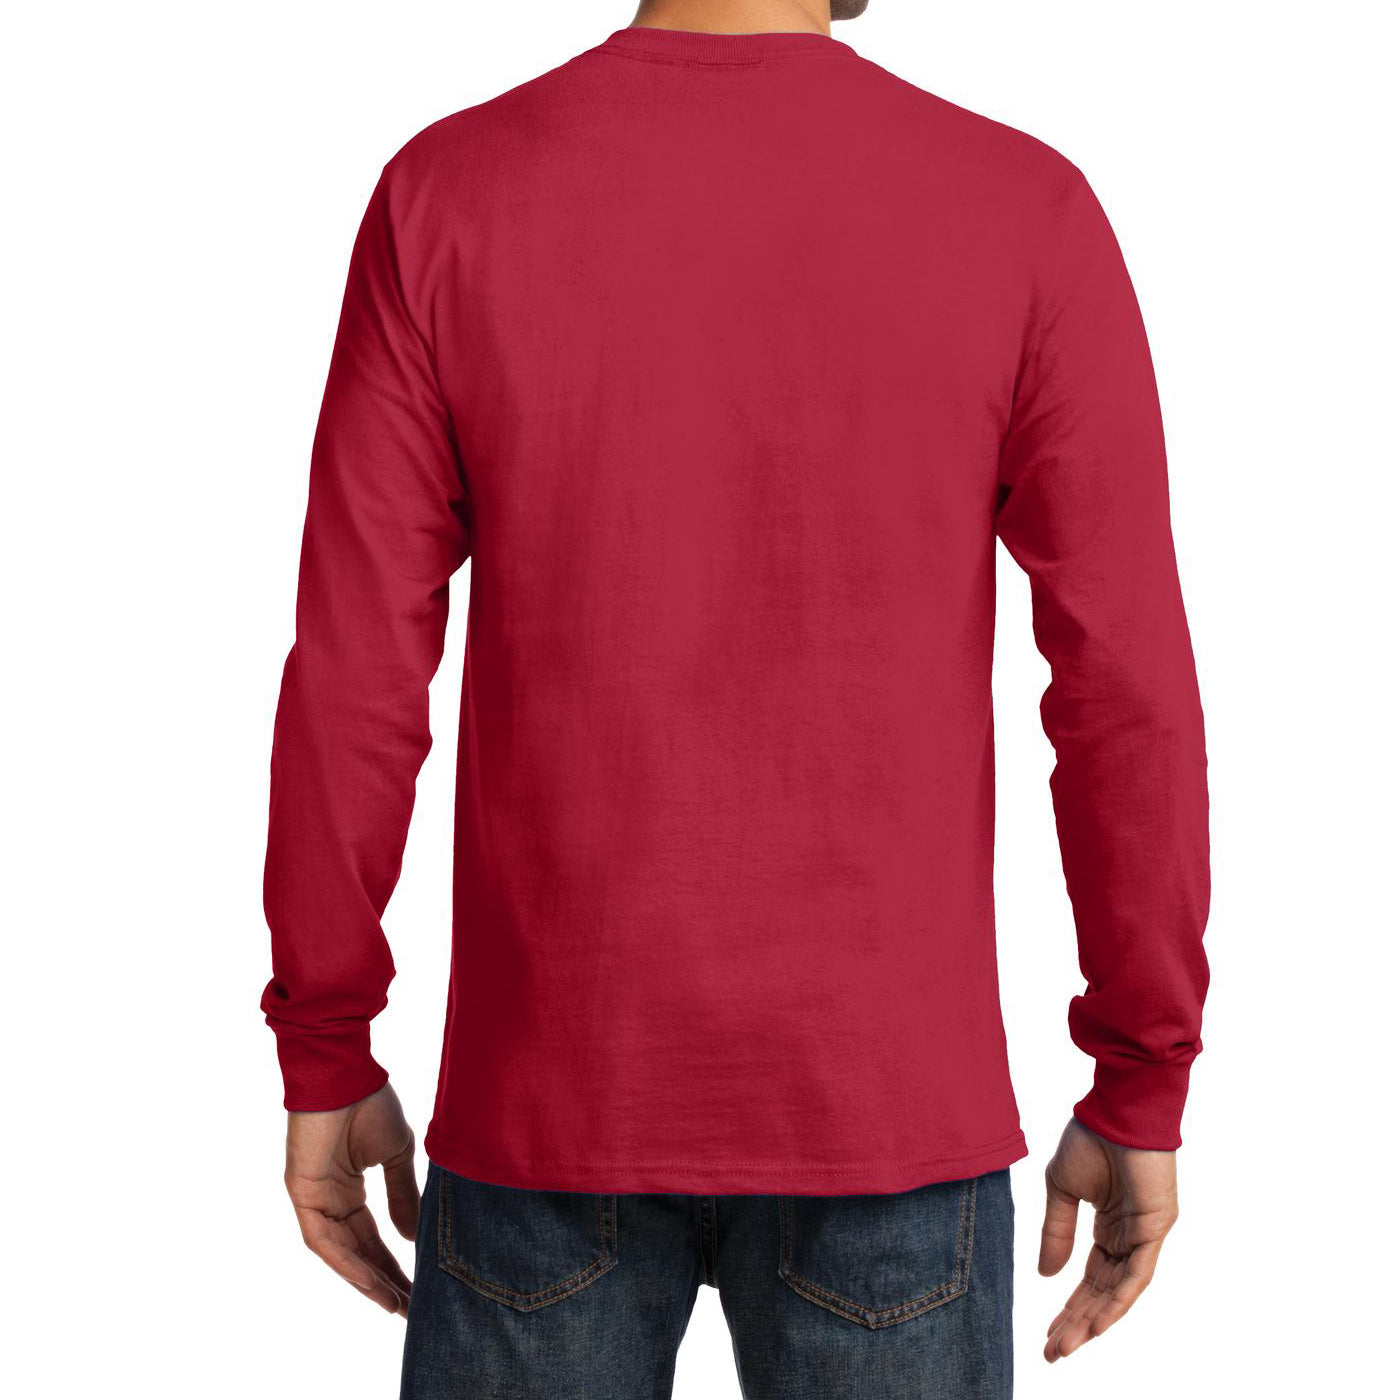 Men's Long Sleeve Essential Tee - Red - Back